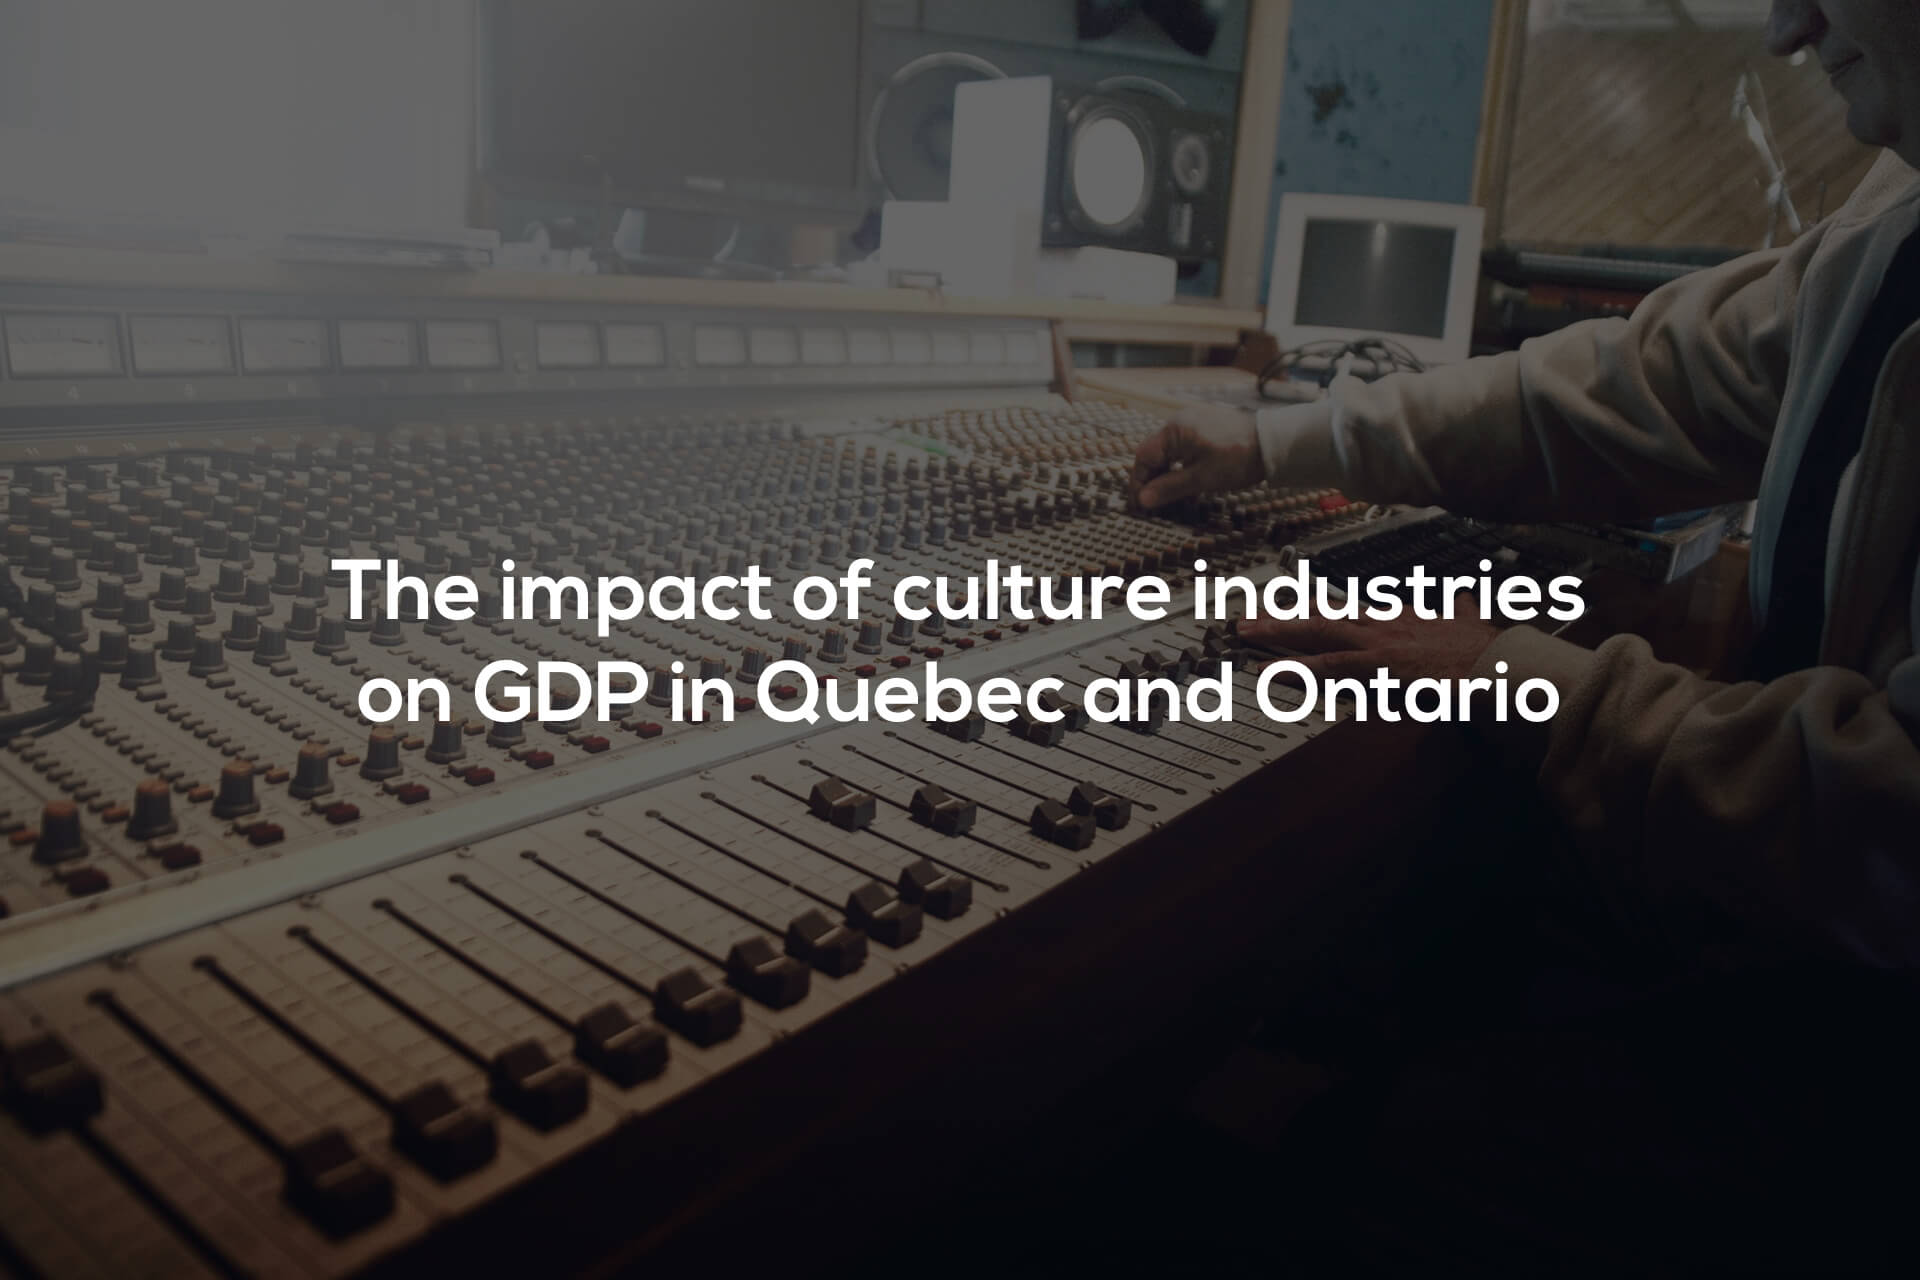 The impact of the cultural industries on the Gross Domestic Product in Quebec and Ontario